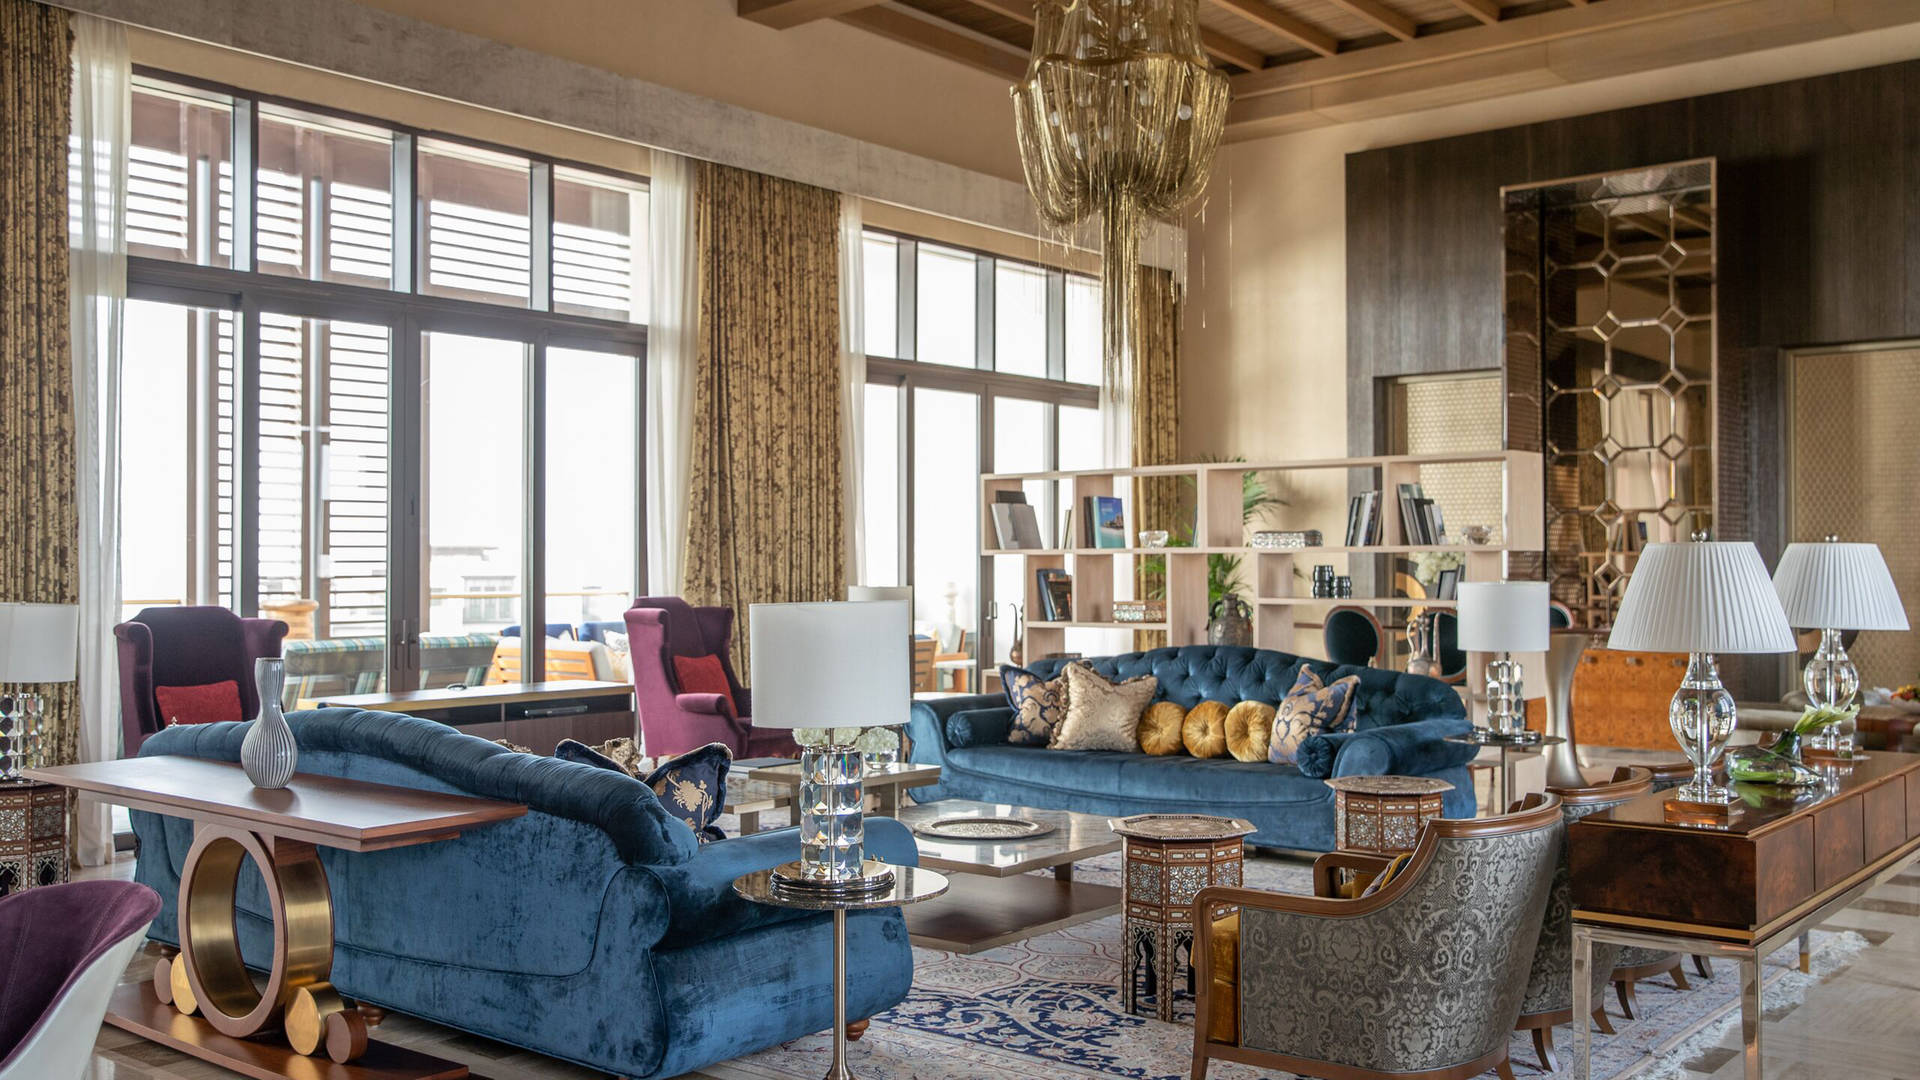 The living room of Jumeirah Al Naseem Royal Suite